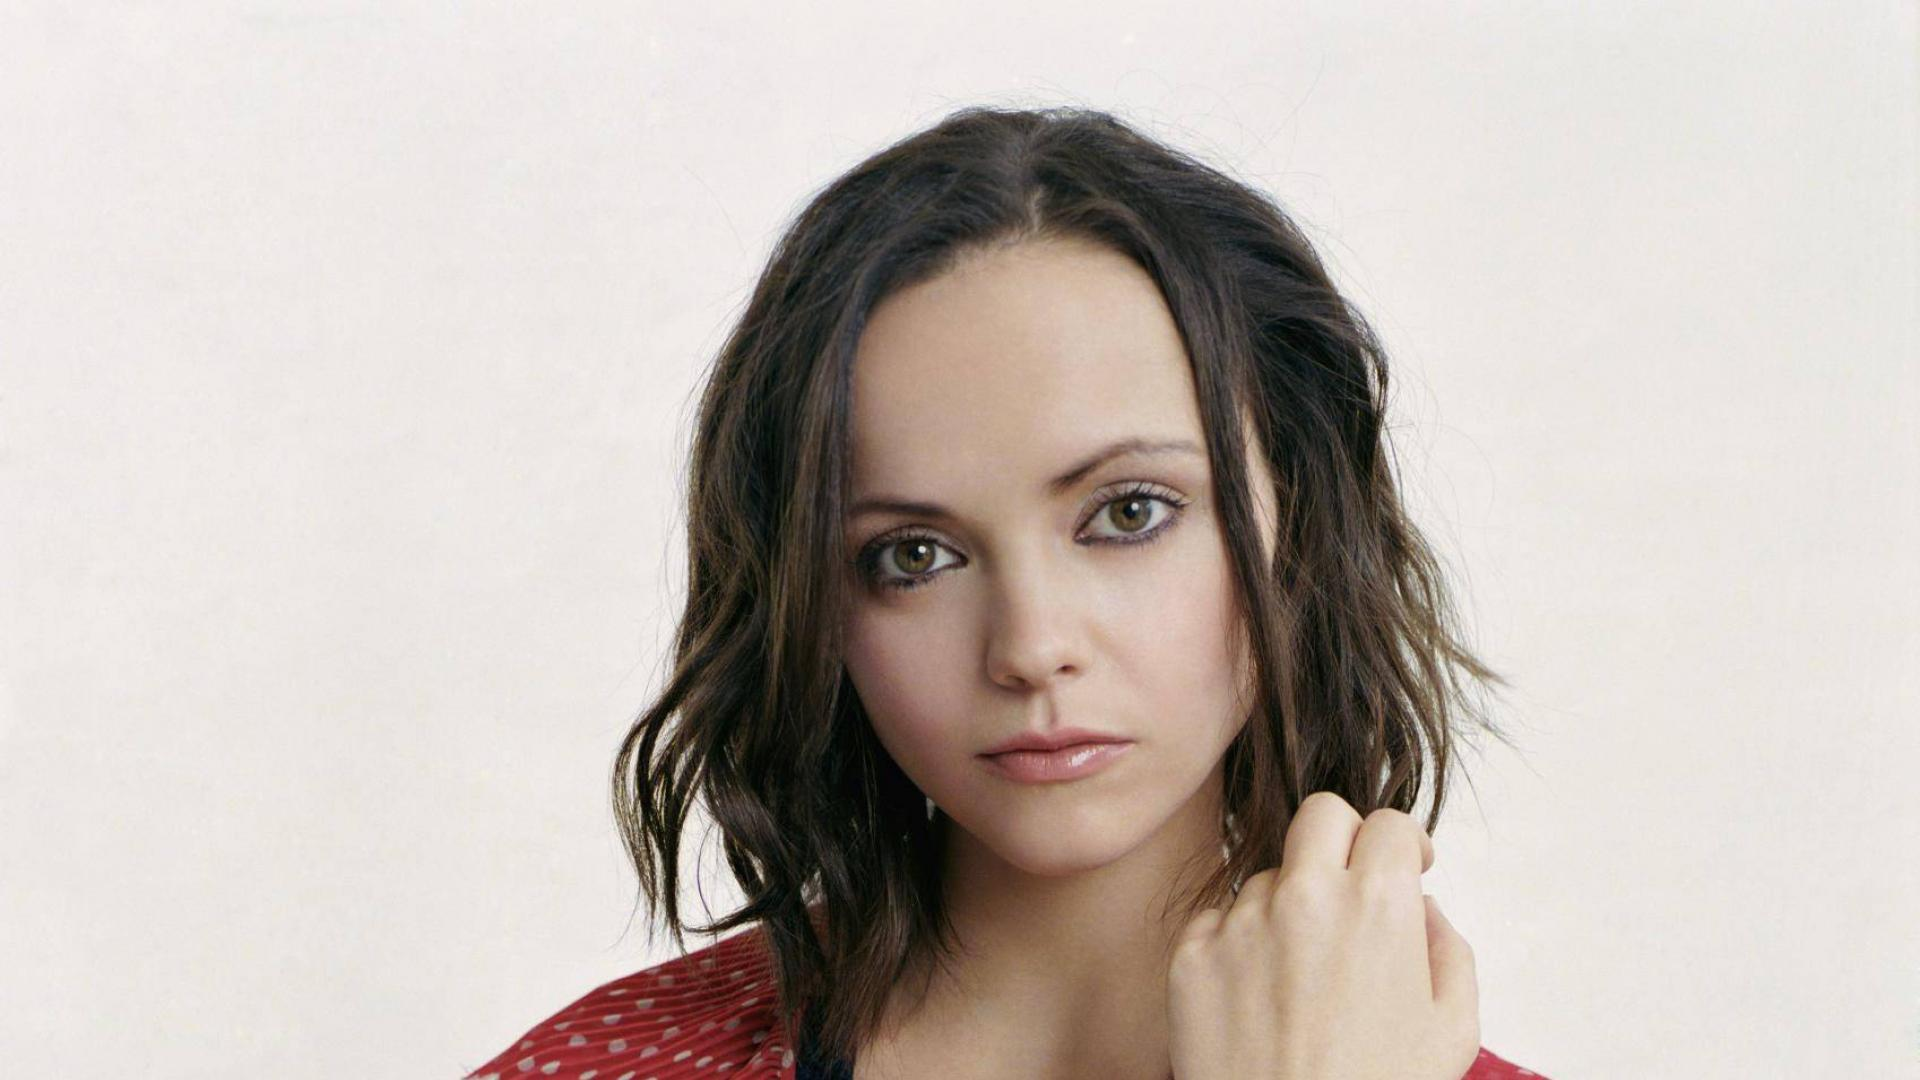 Christina Ricci Wallpapers Images Photos Pictures Backgrounds 1920x1080